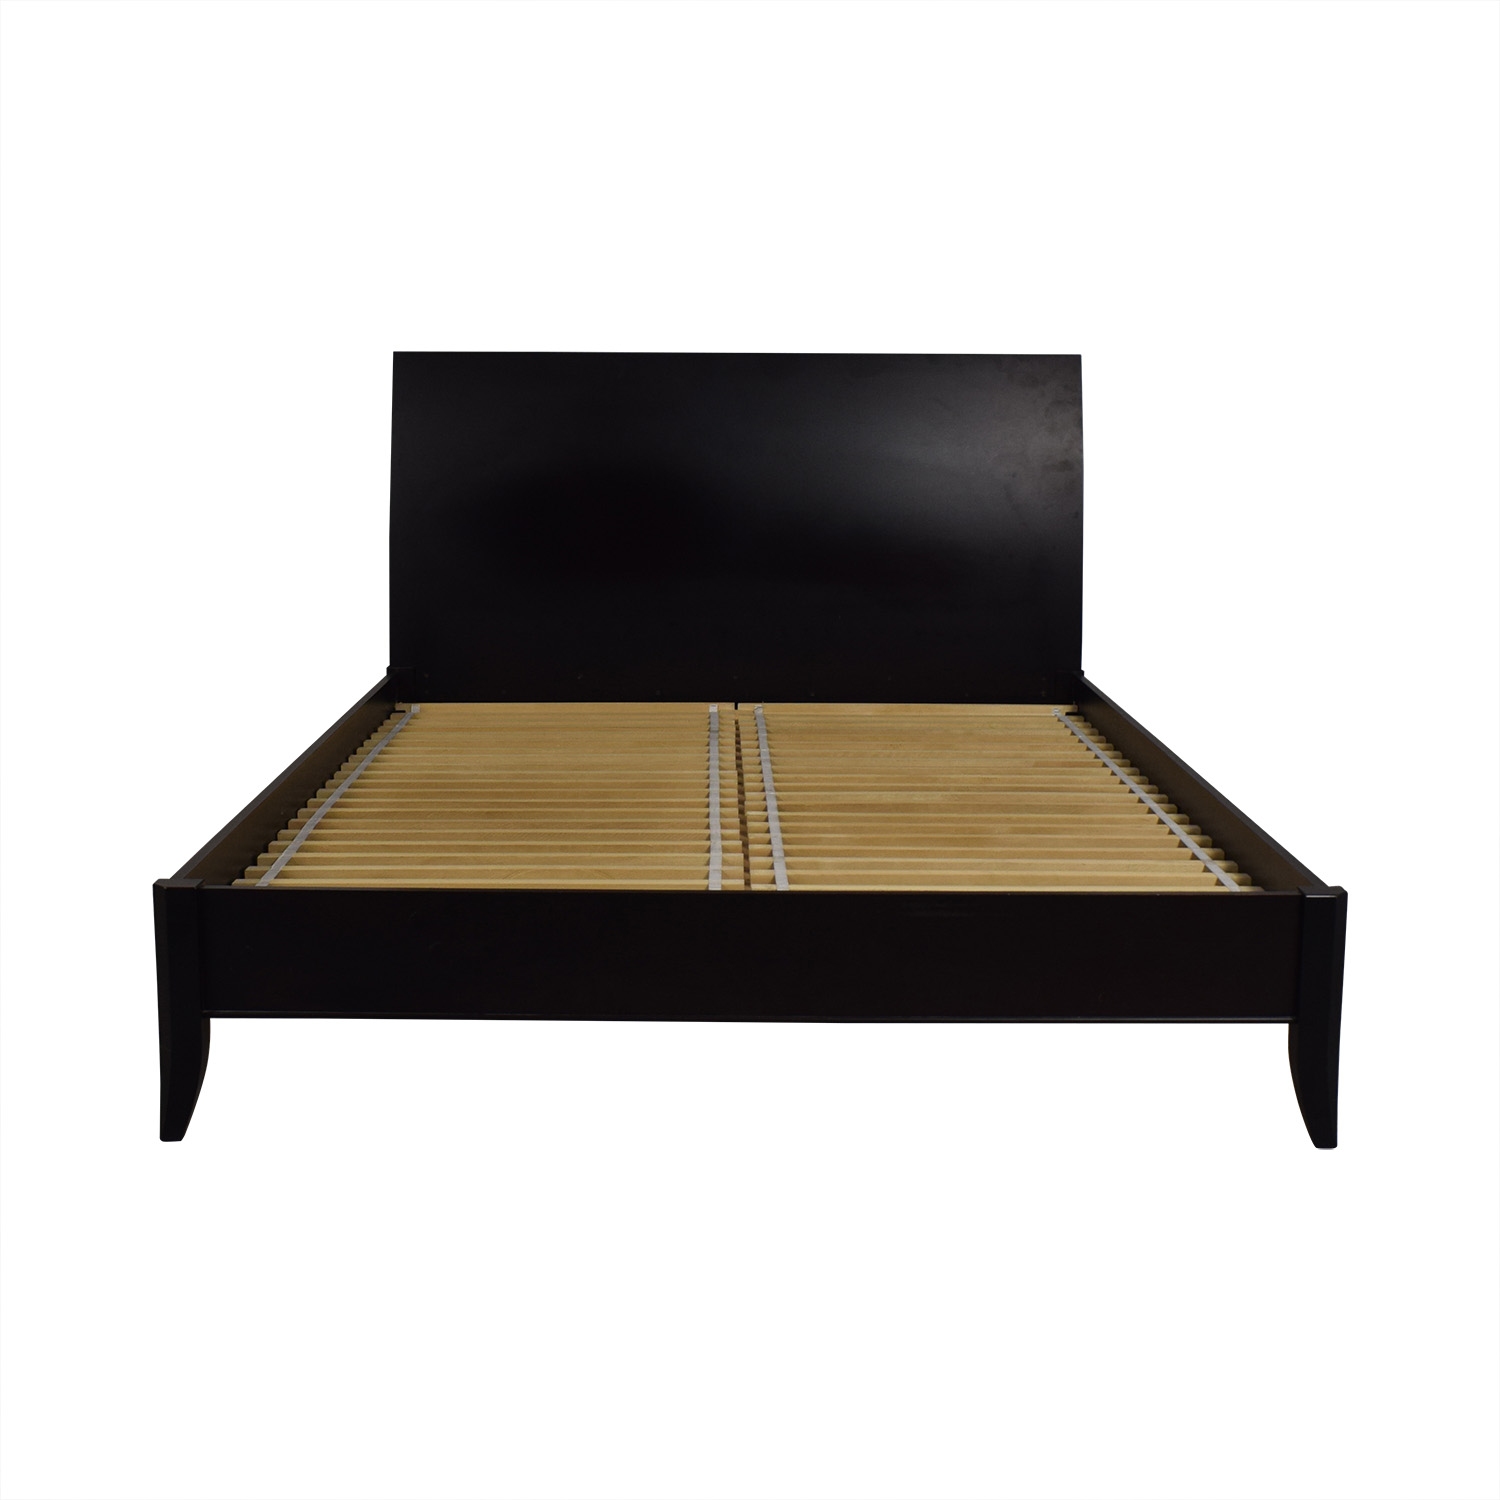 buy Crate & Barrel Platform Queen Bed Frame Crate & Barrel